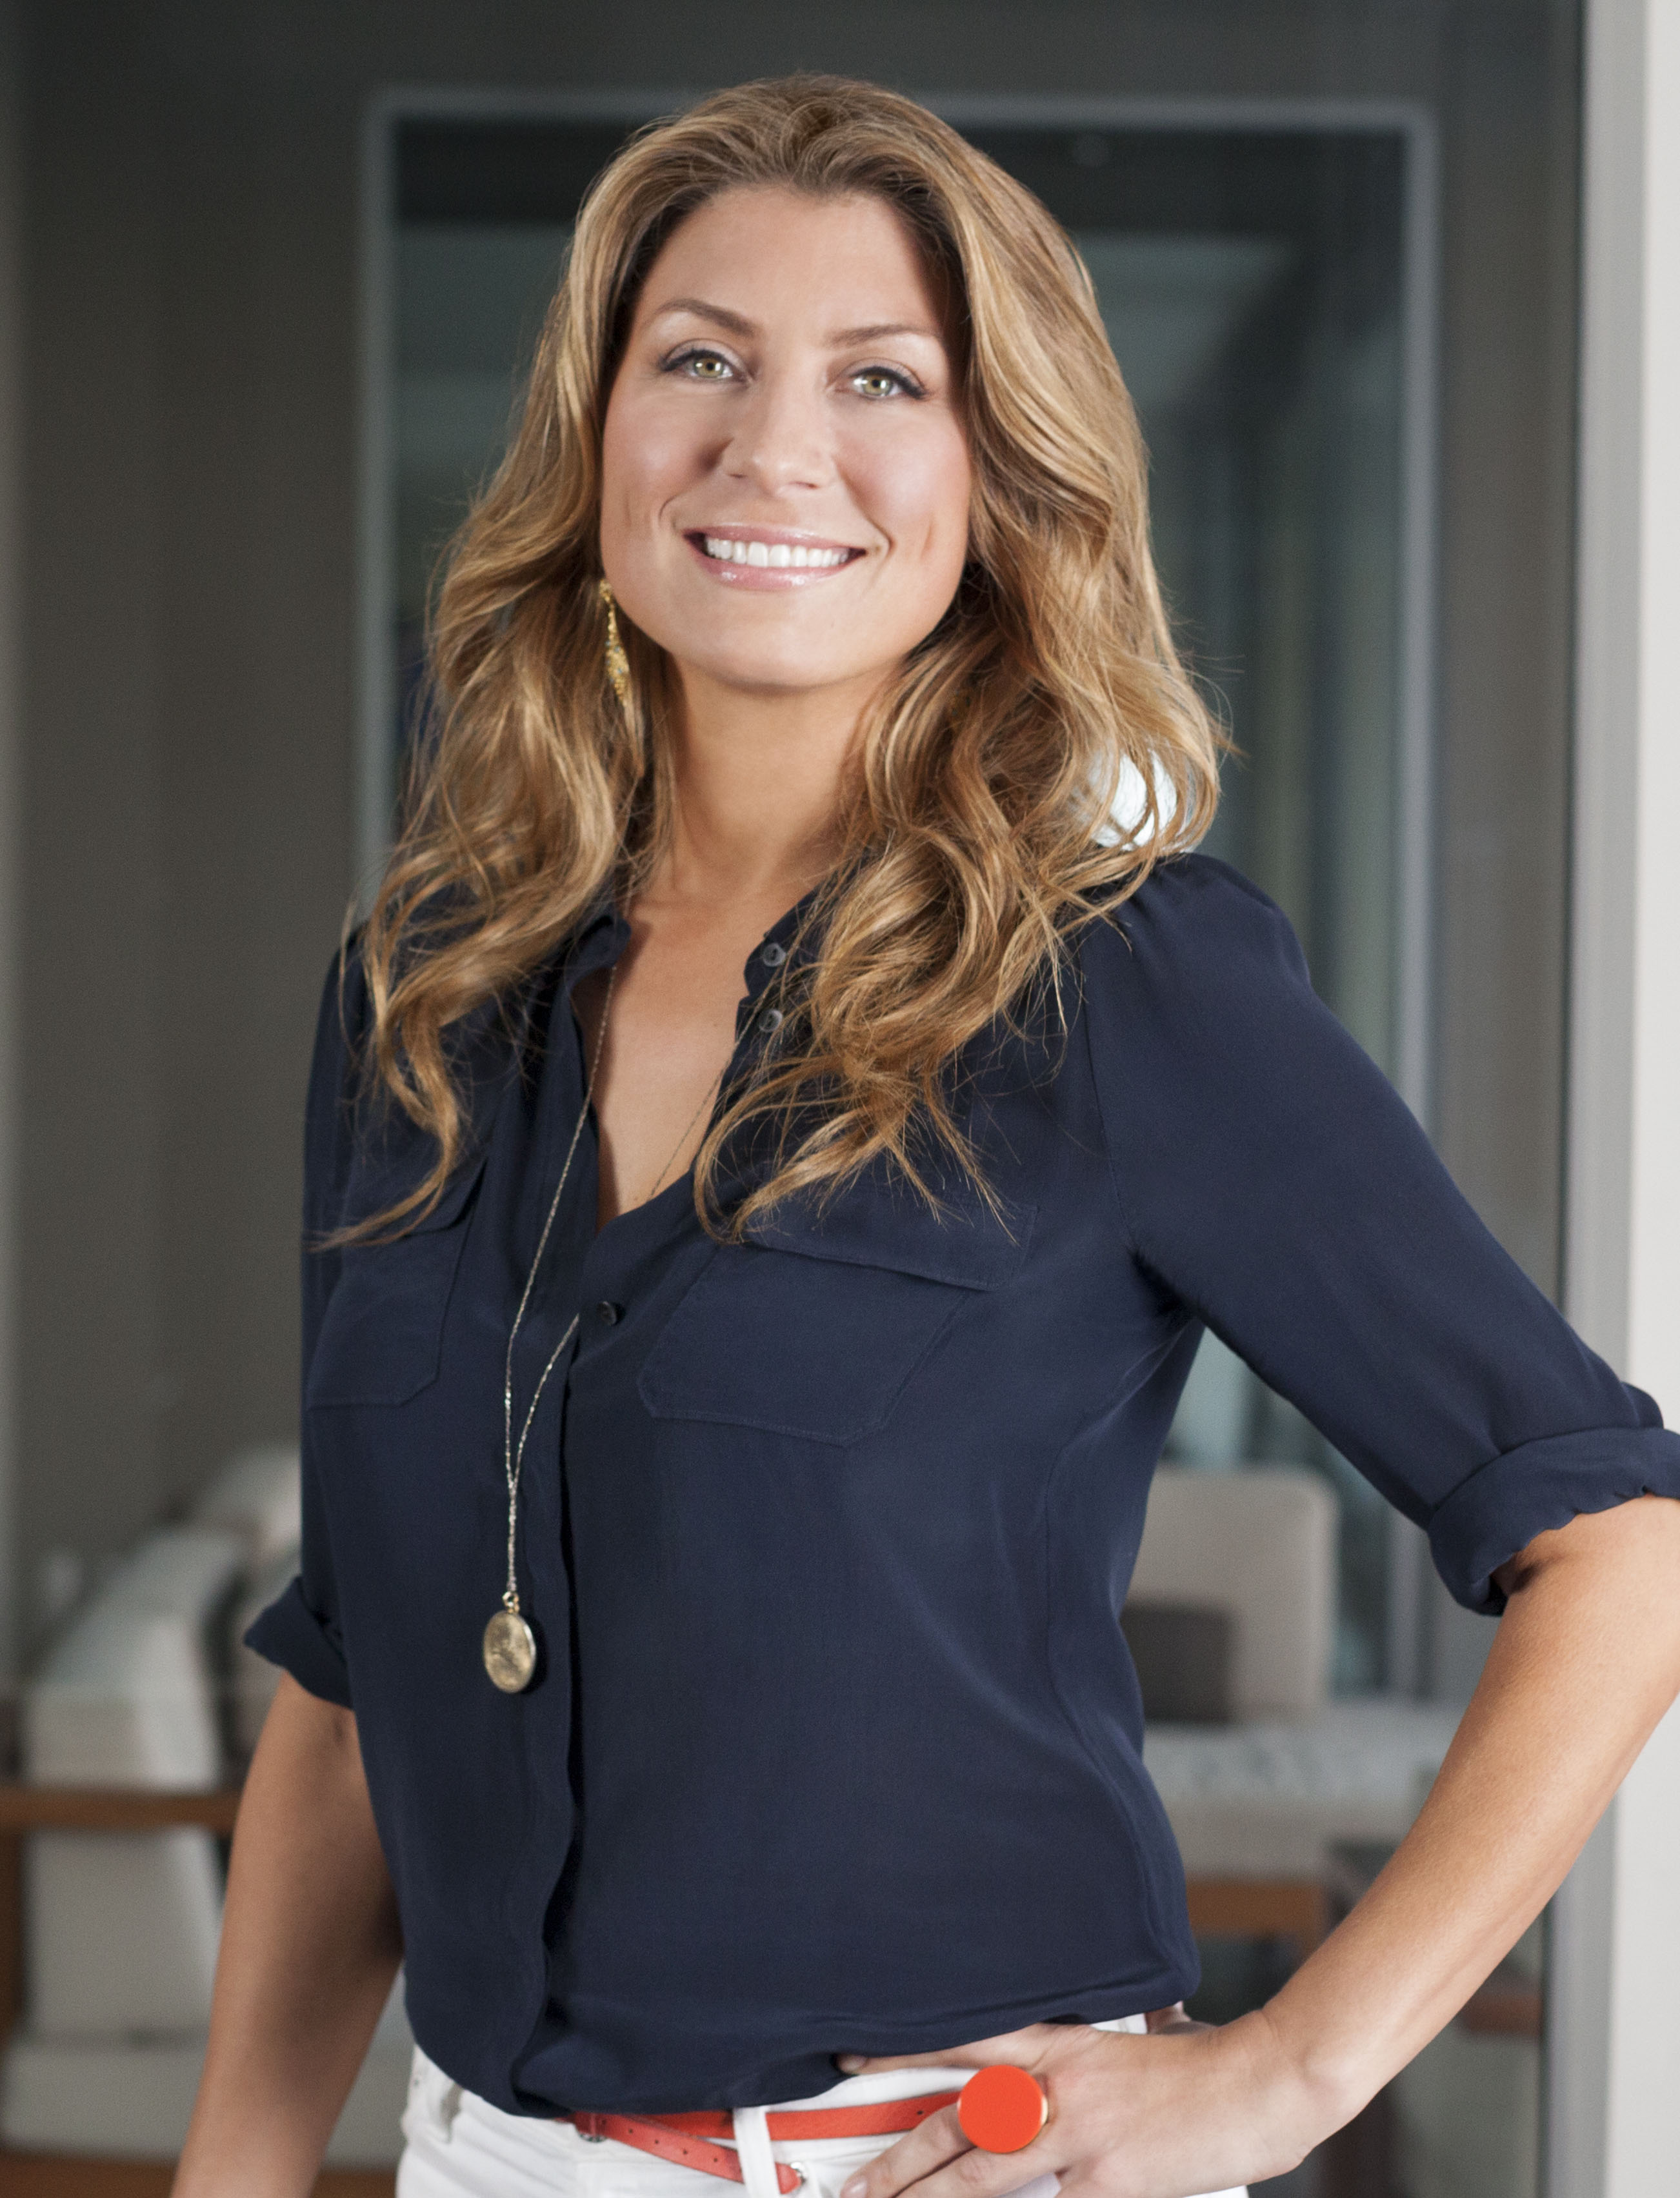 Upcoming Meet And Greet with Genevieve Gorder!